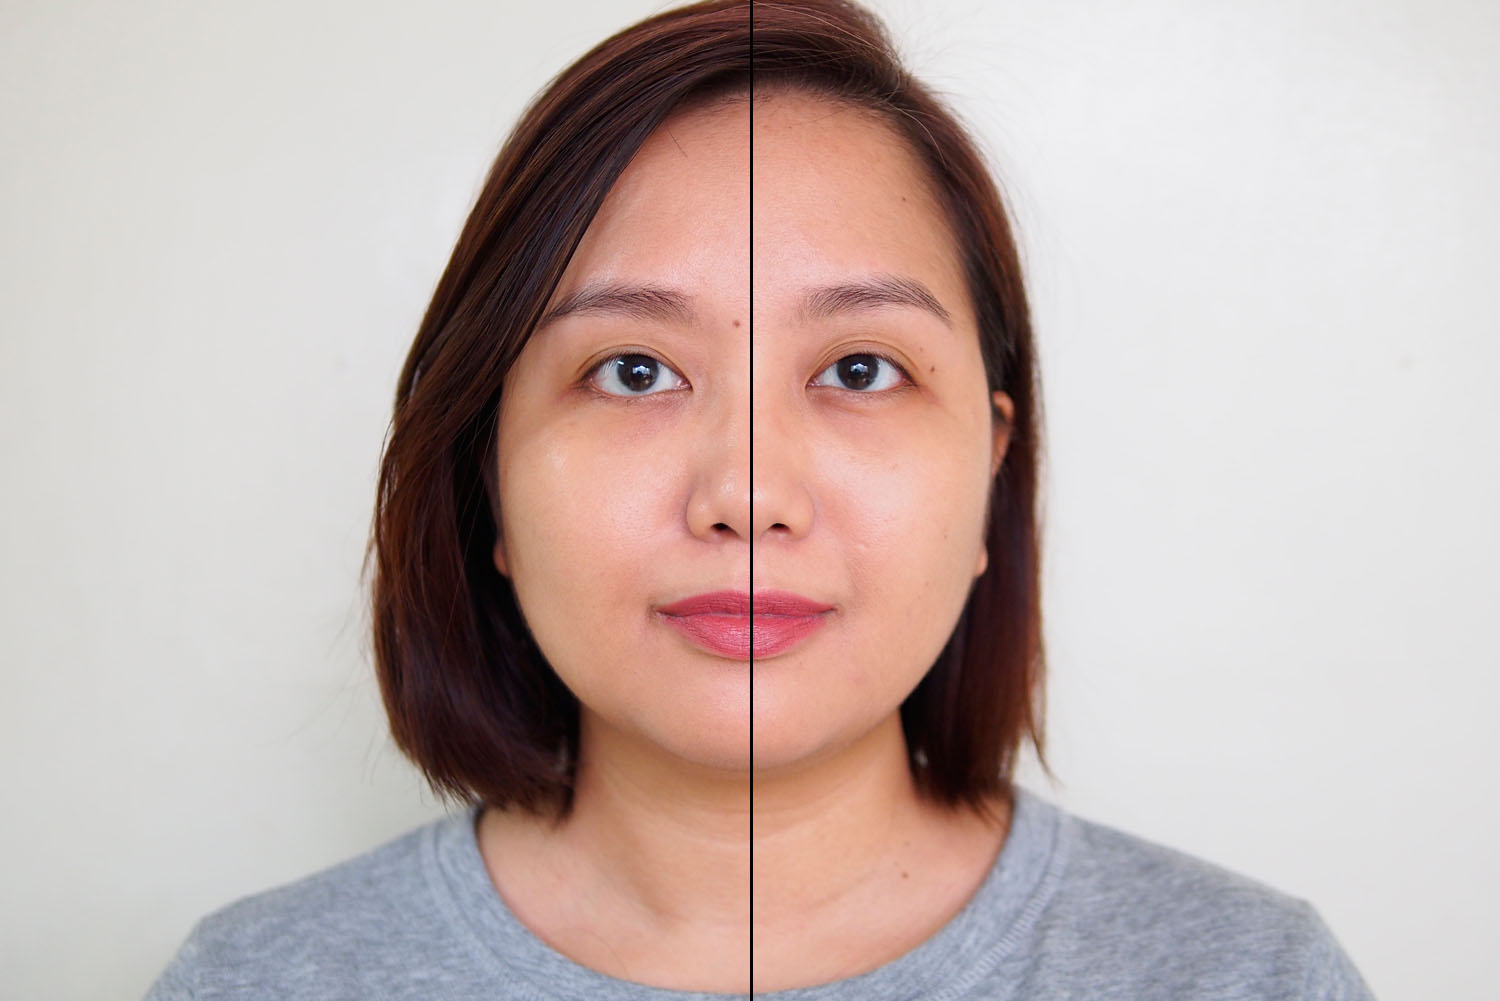 Left: foundation only, Right: foundation with primer